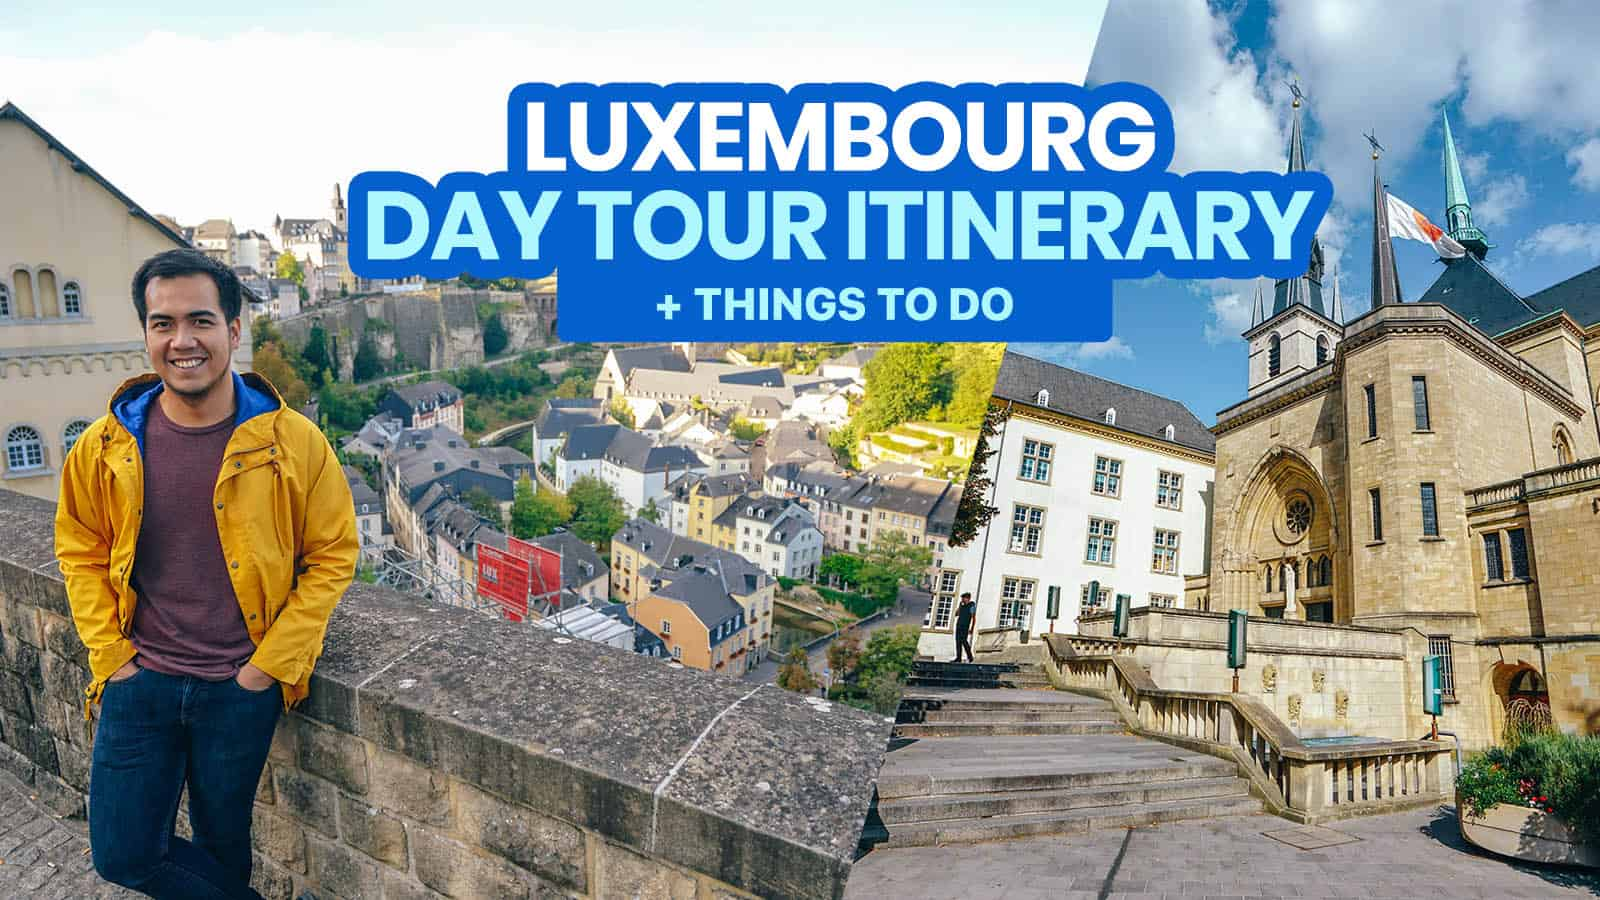 LUXEMBOURG DAY TOUR ITINERARY: 15 Things to Do & Walking Route